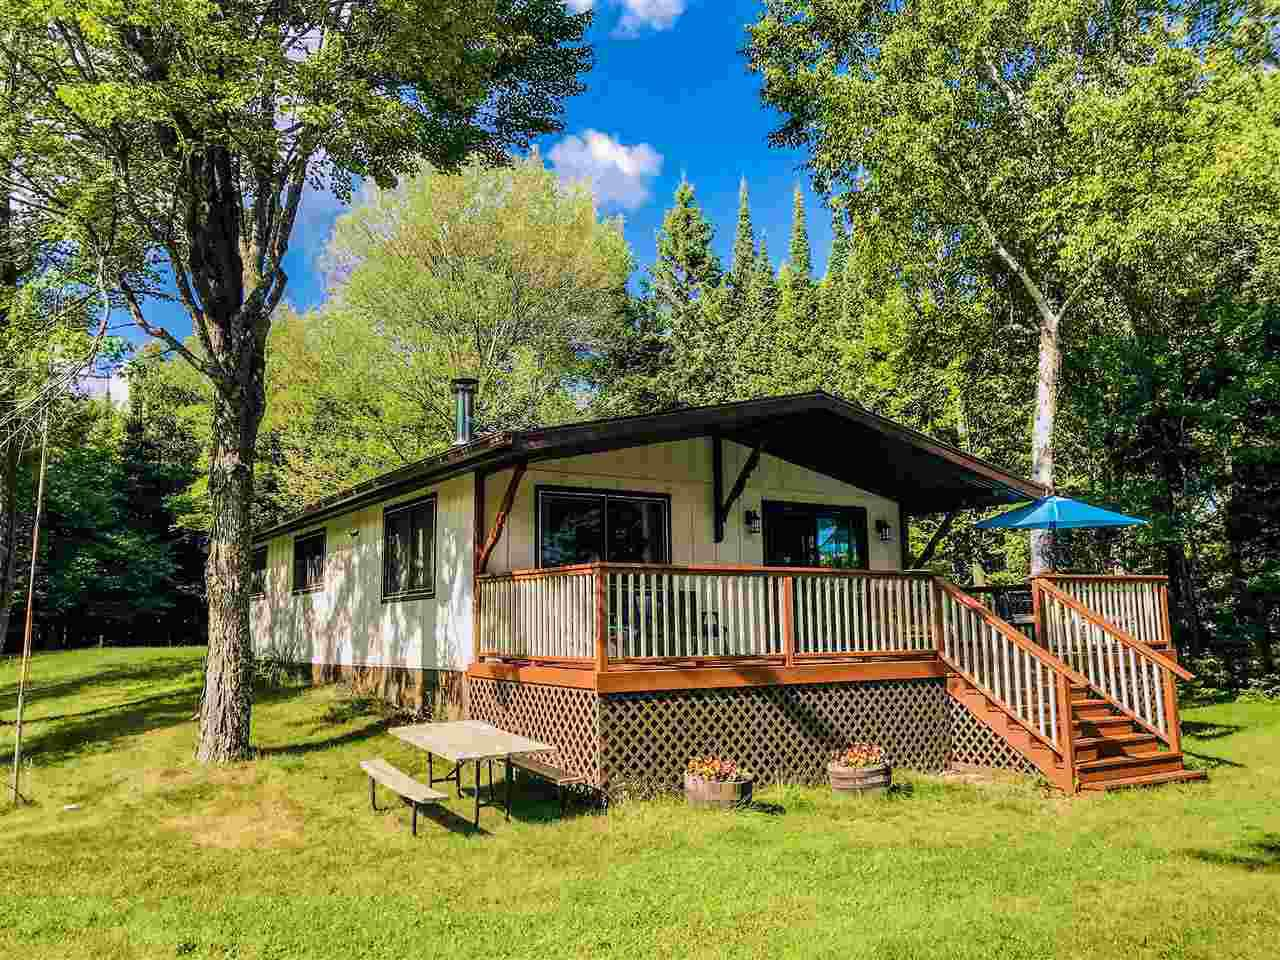 """ALL MEASUREMENTS ARE APPROXIMATE. BUYER TO VERIFY ALL DATA"",Very well maintained Manson Lake cabin/home with level sand frontage. Kitchen has a large breakfast bar and nice dinning area over looking the frontage. Living room has a wood stove with blower and open layout with be a great space to gather. 3 bedrooms, remodeled full bath and nice laundry room and walk-in pantry for storage. Property is between Tomahawk and Rhinelander with easy access. Fully furnished and other lake items negotiable. Manson Lake is known for it's clear water."